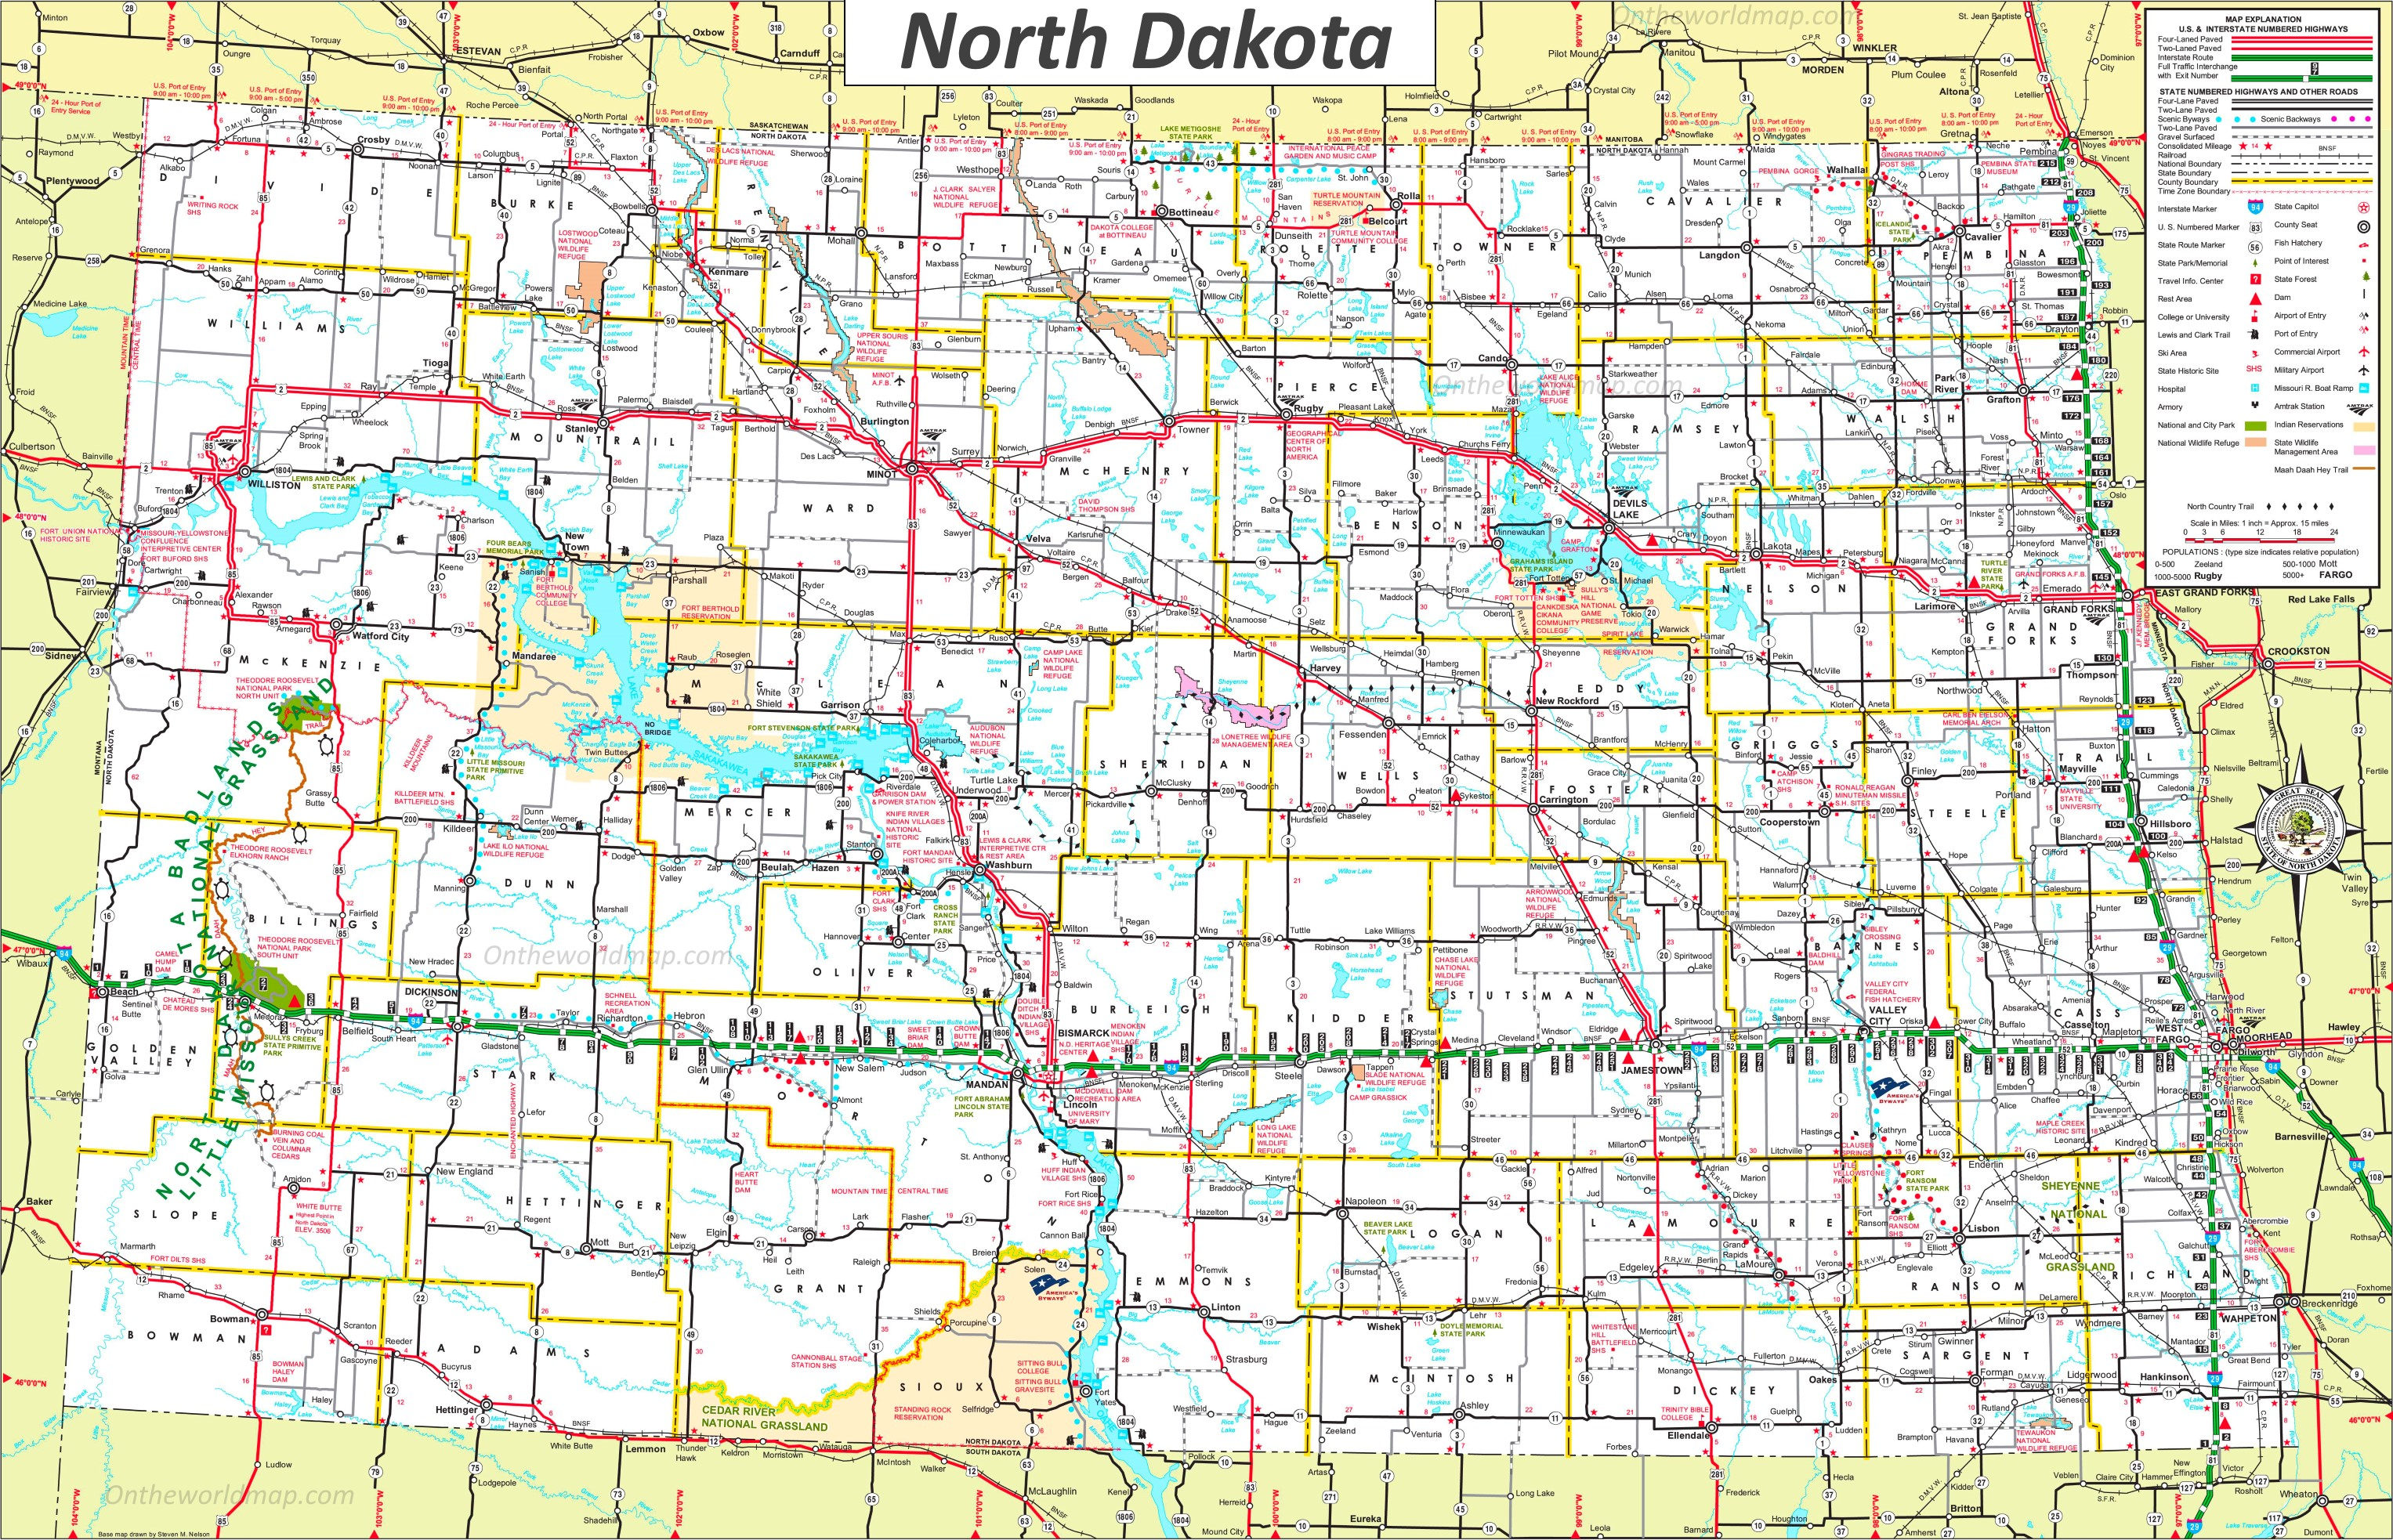 Large Detailed Tourist Map Of North Dakota With Cities And Towns - Maps of north dakota